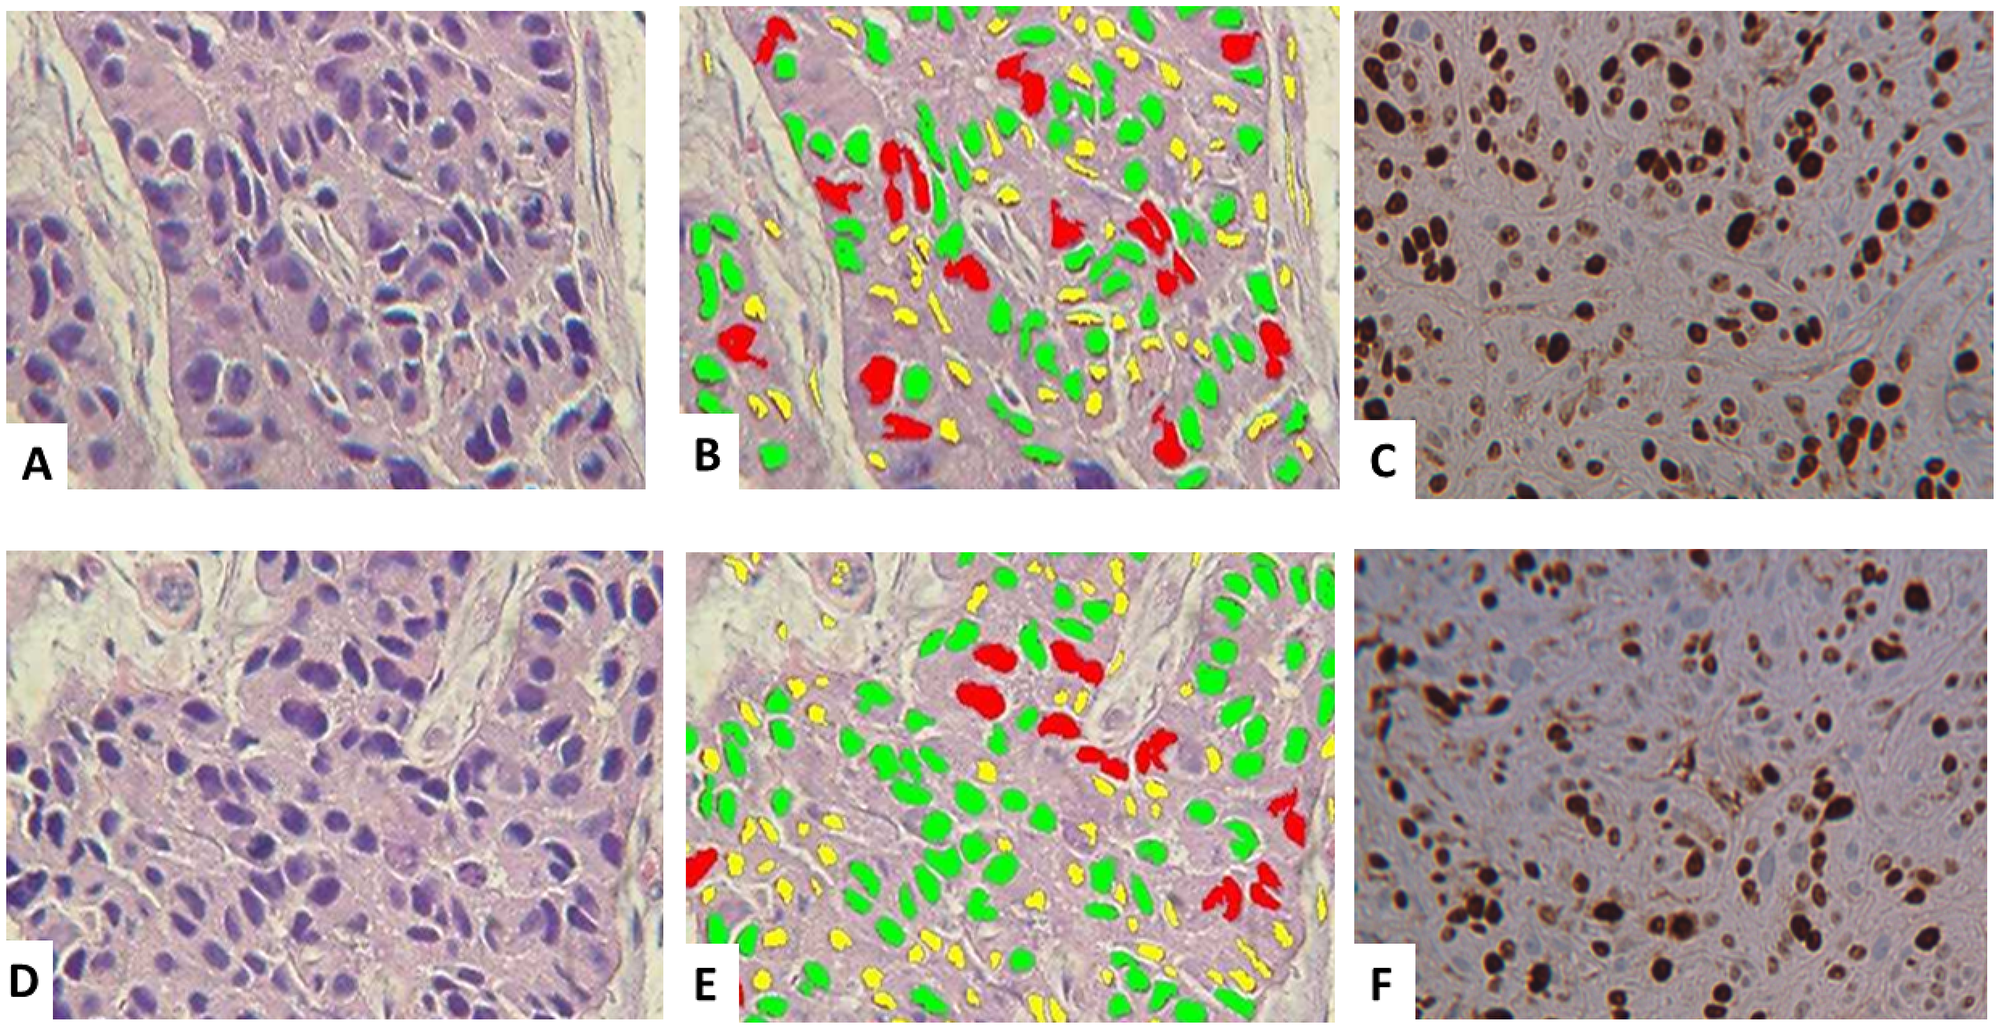 Histology and digital image analysis with additional specific recognition algorithms (SRAs).